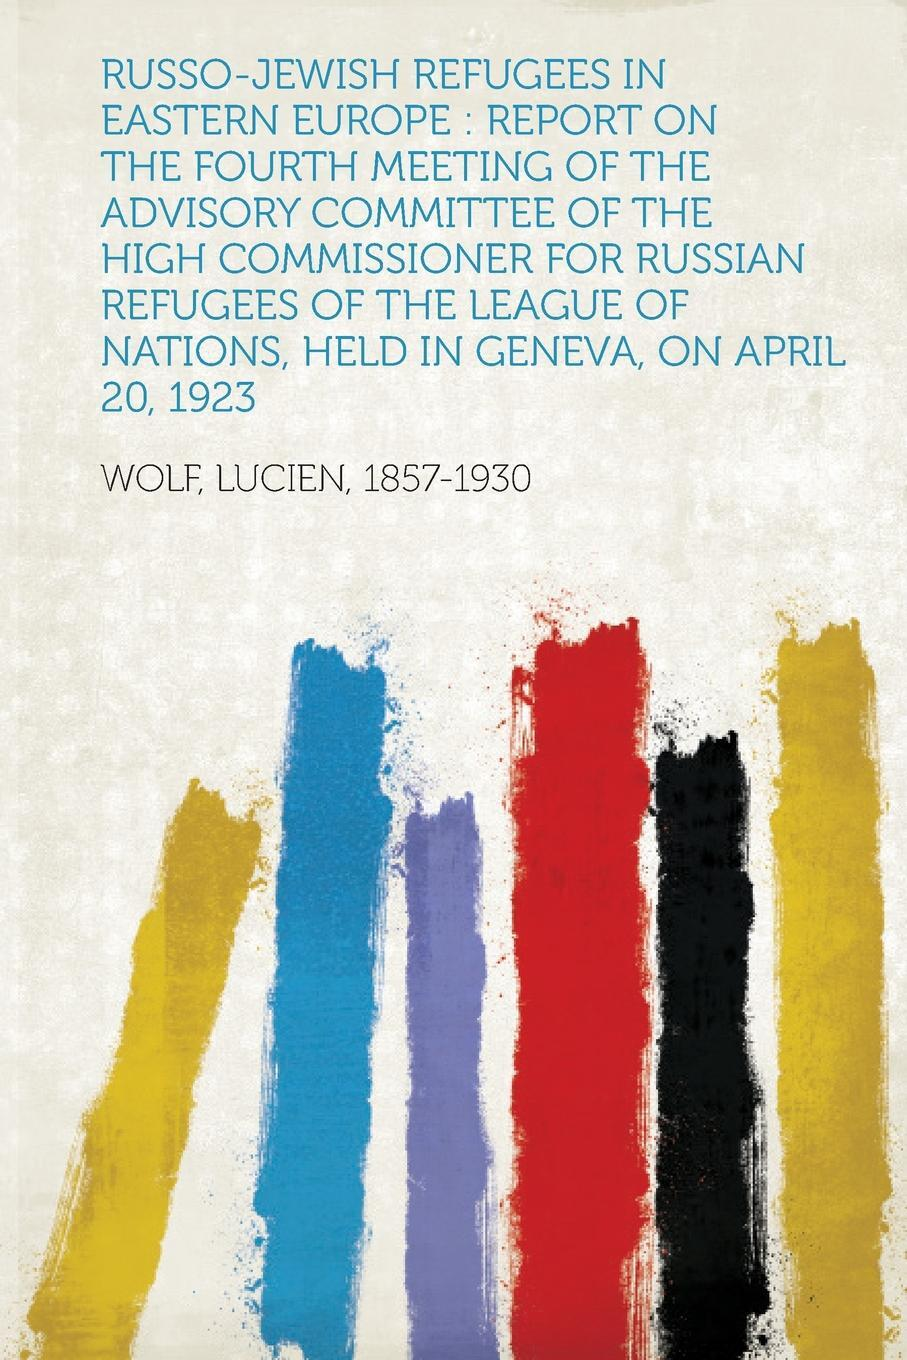 Russo-Jewish Refugees in Eastern Europe. Report on the Fourth Meeting of the Advisory Committee of the High Commissioner for Russian Refugees of the L